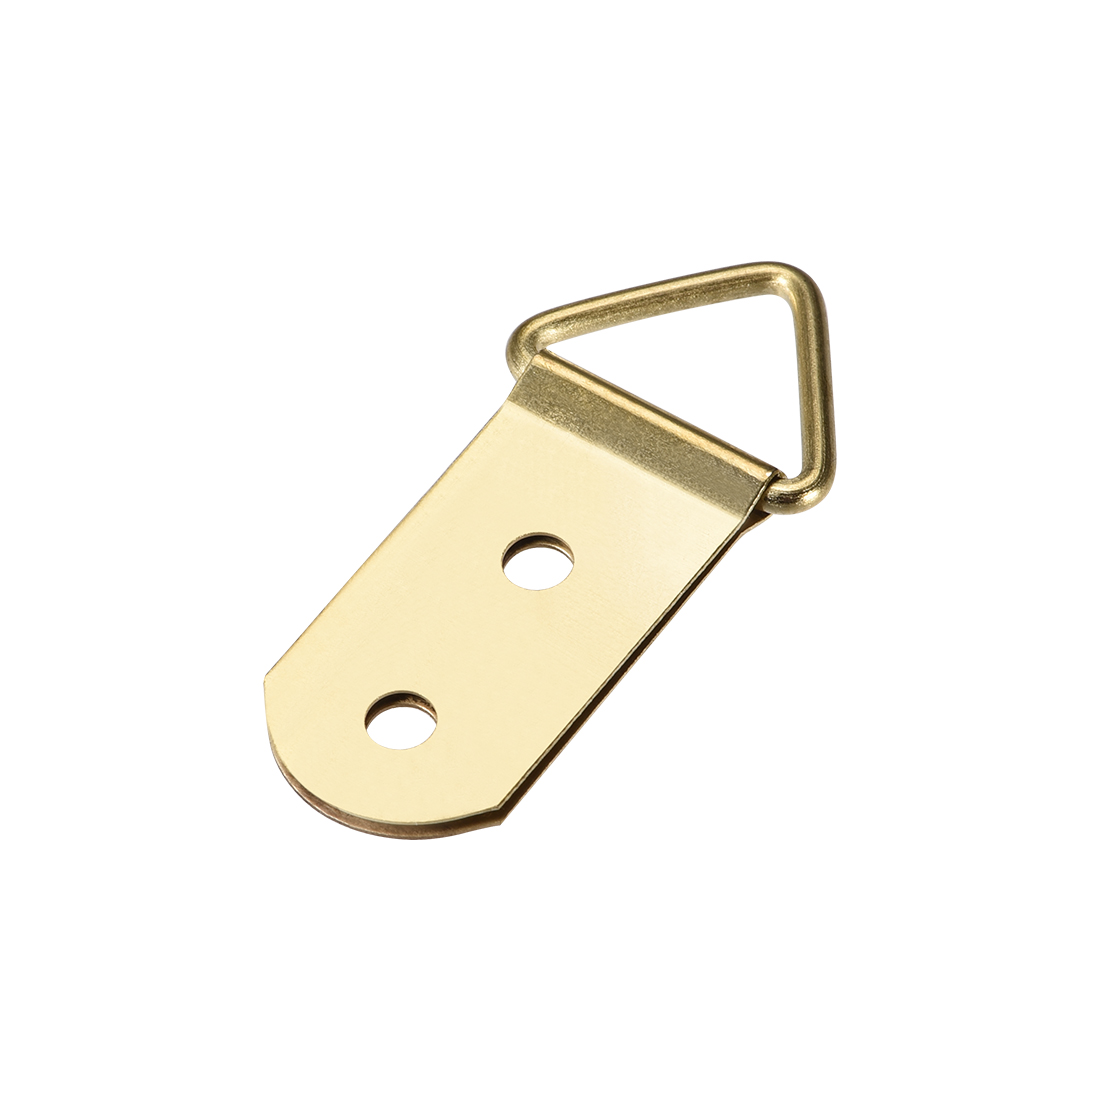 Triangle Ring Picture Hangers, 40mm x 19mm Golden Kit for Photo Hanging, 20 Pcs